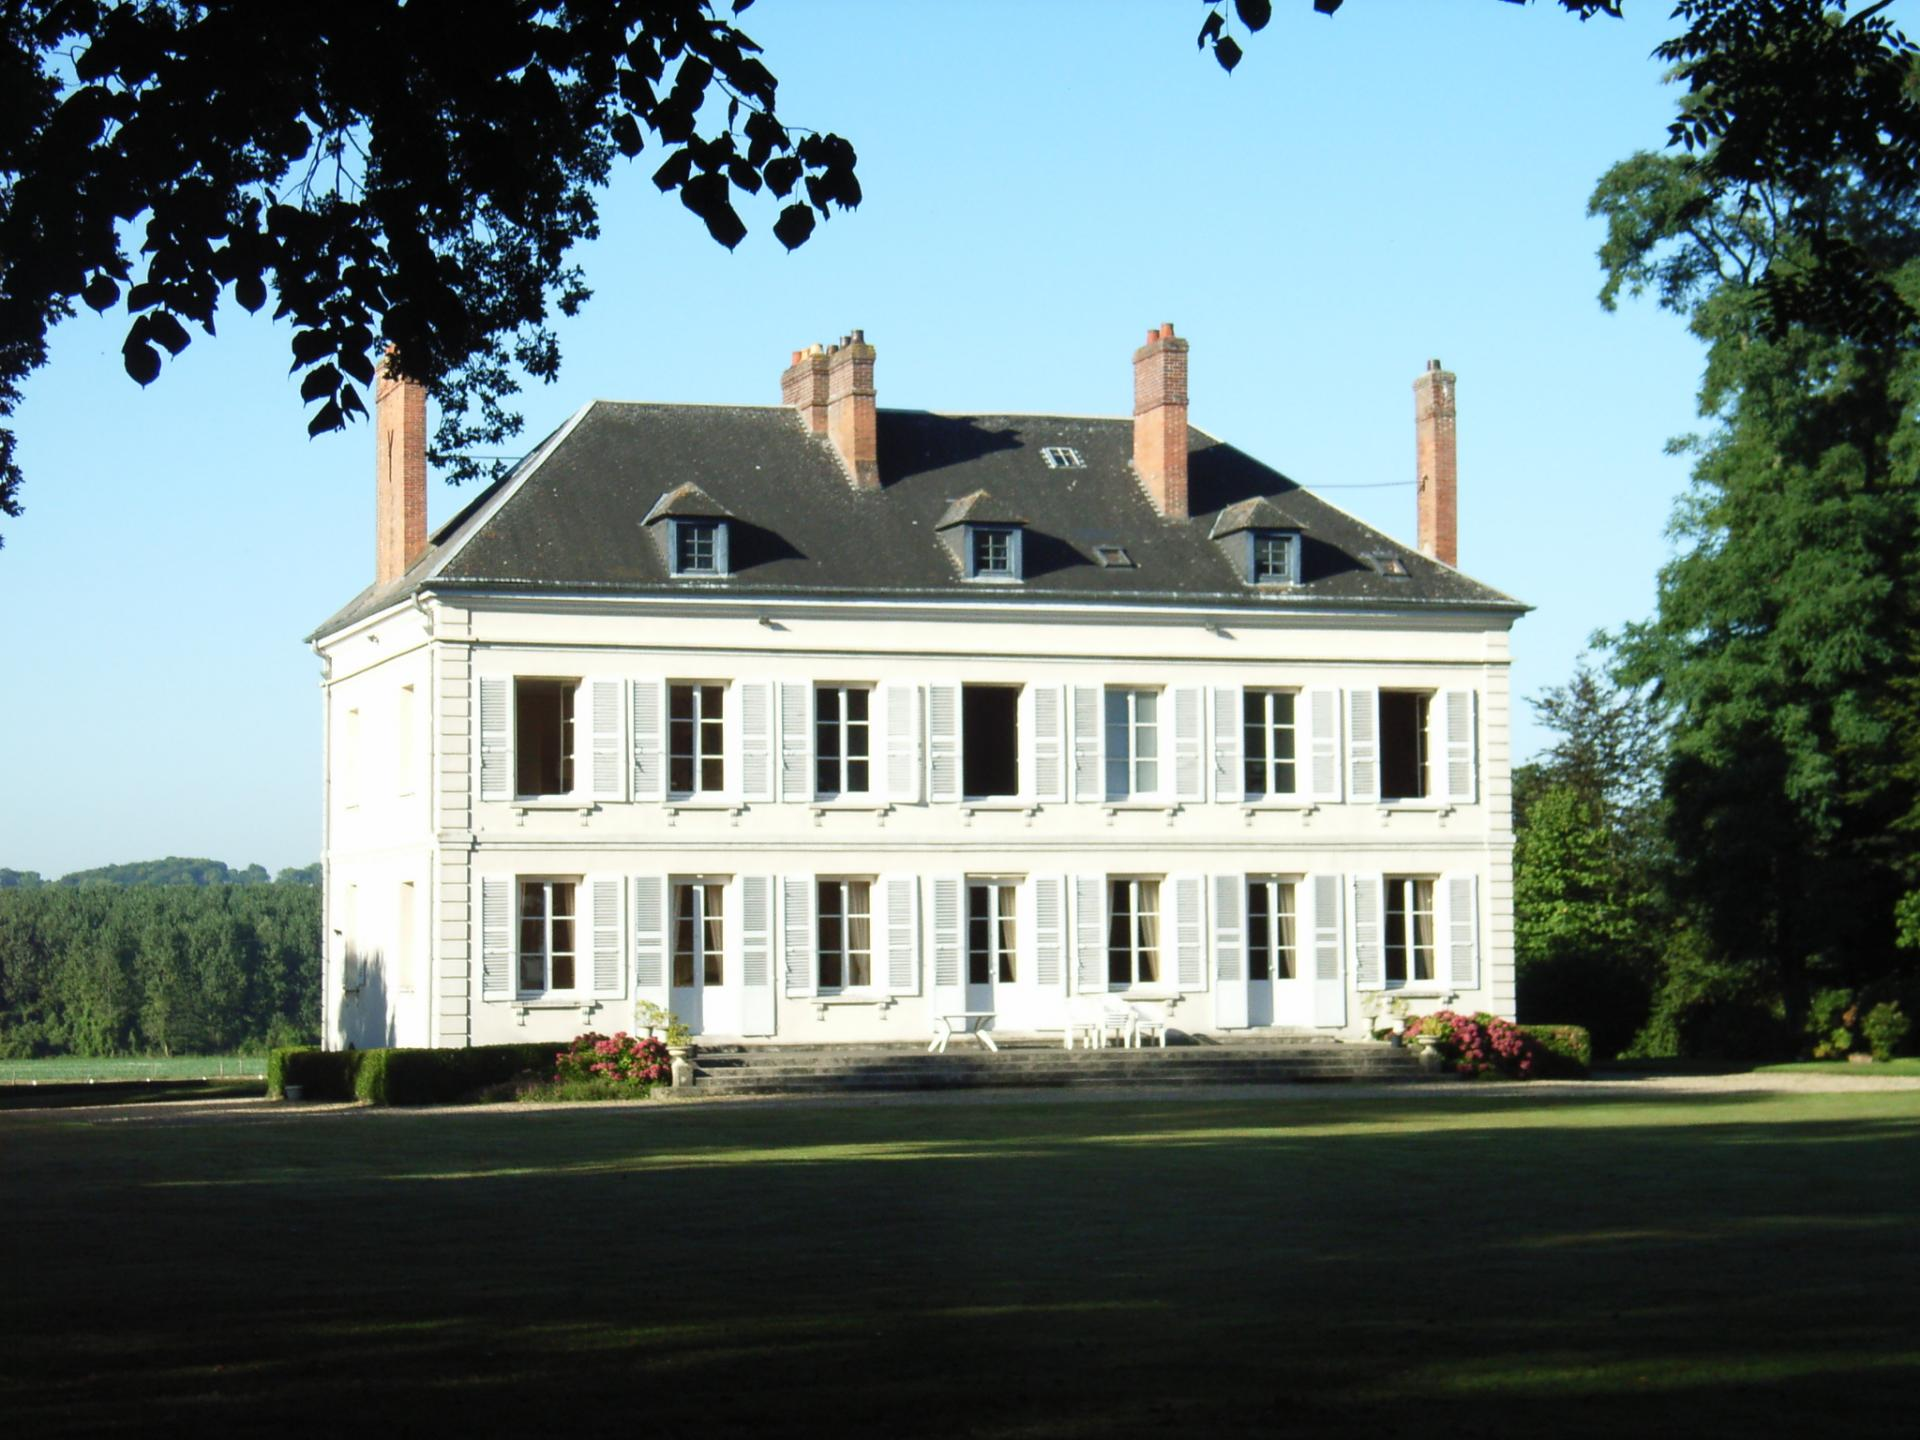 Photo du chateau